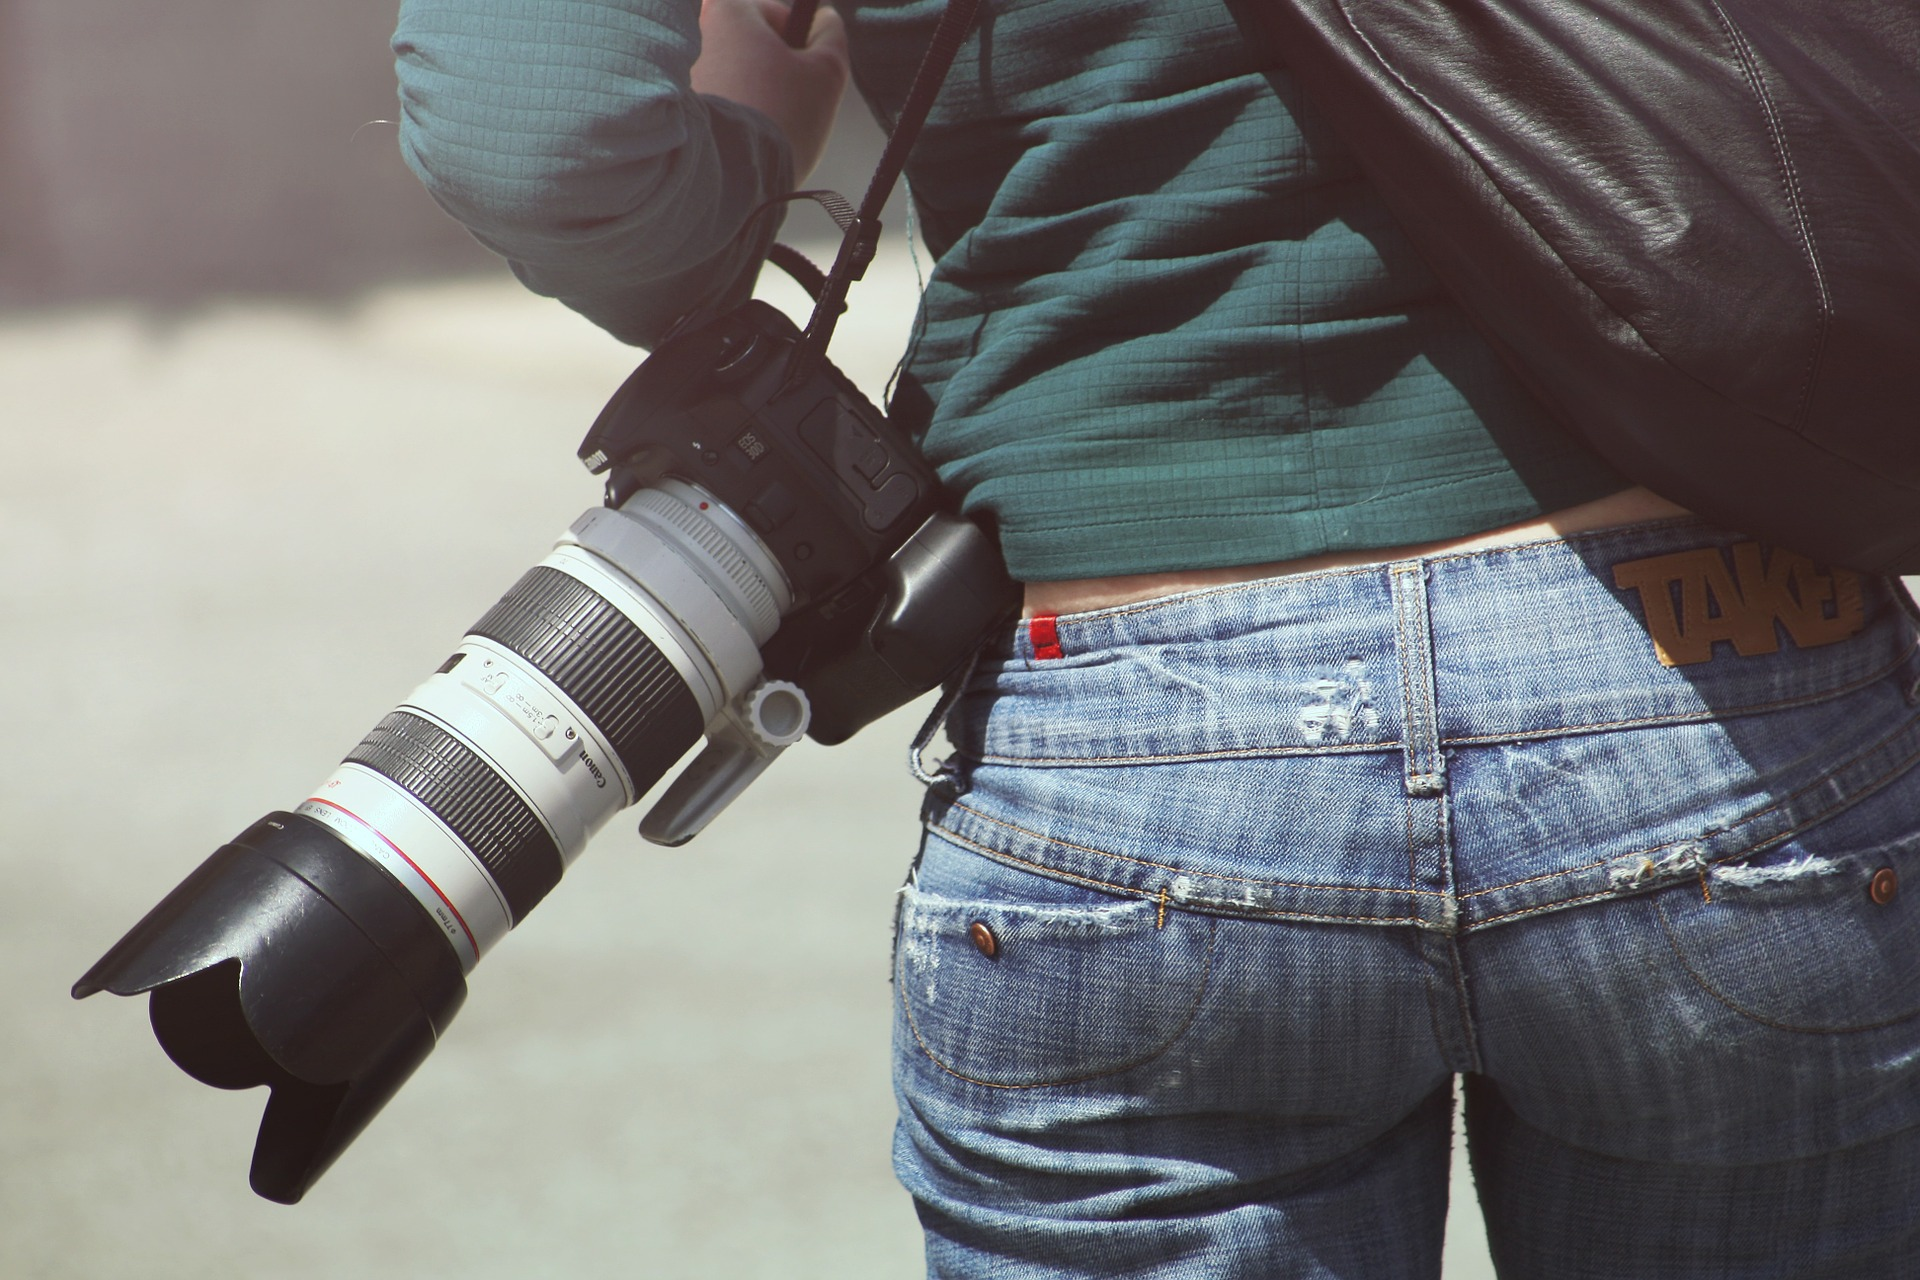 Top 7 Videography Tips For Beginners